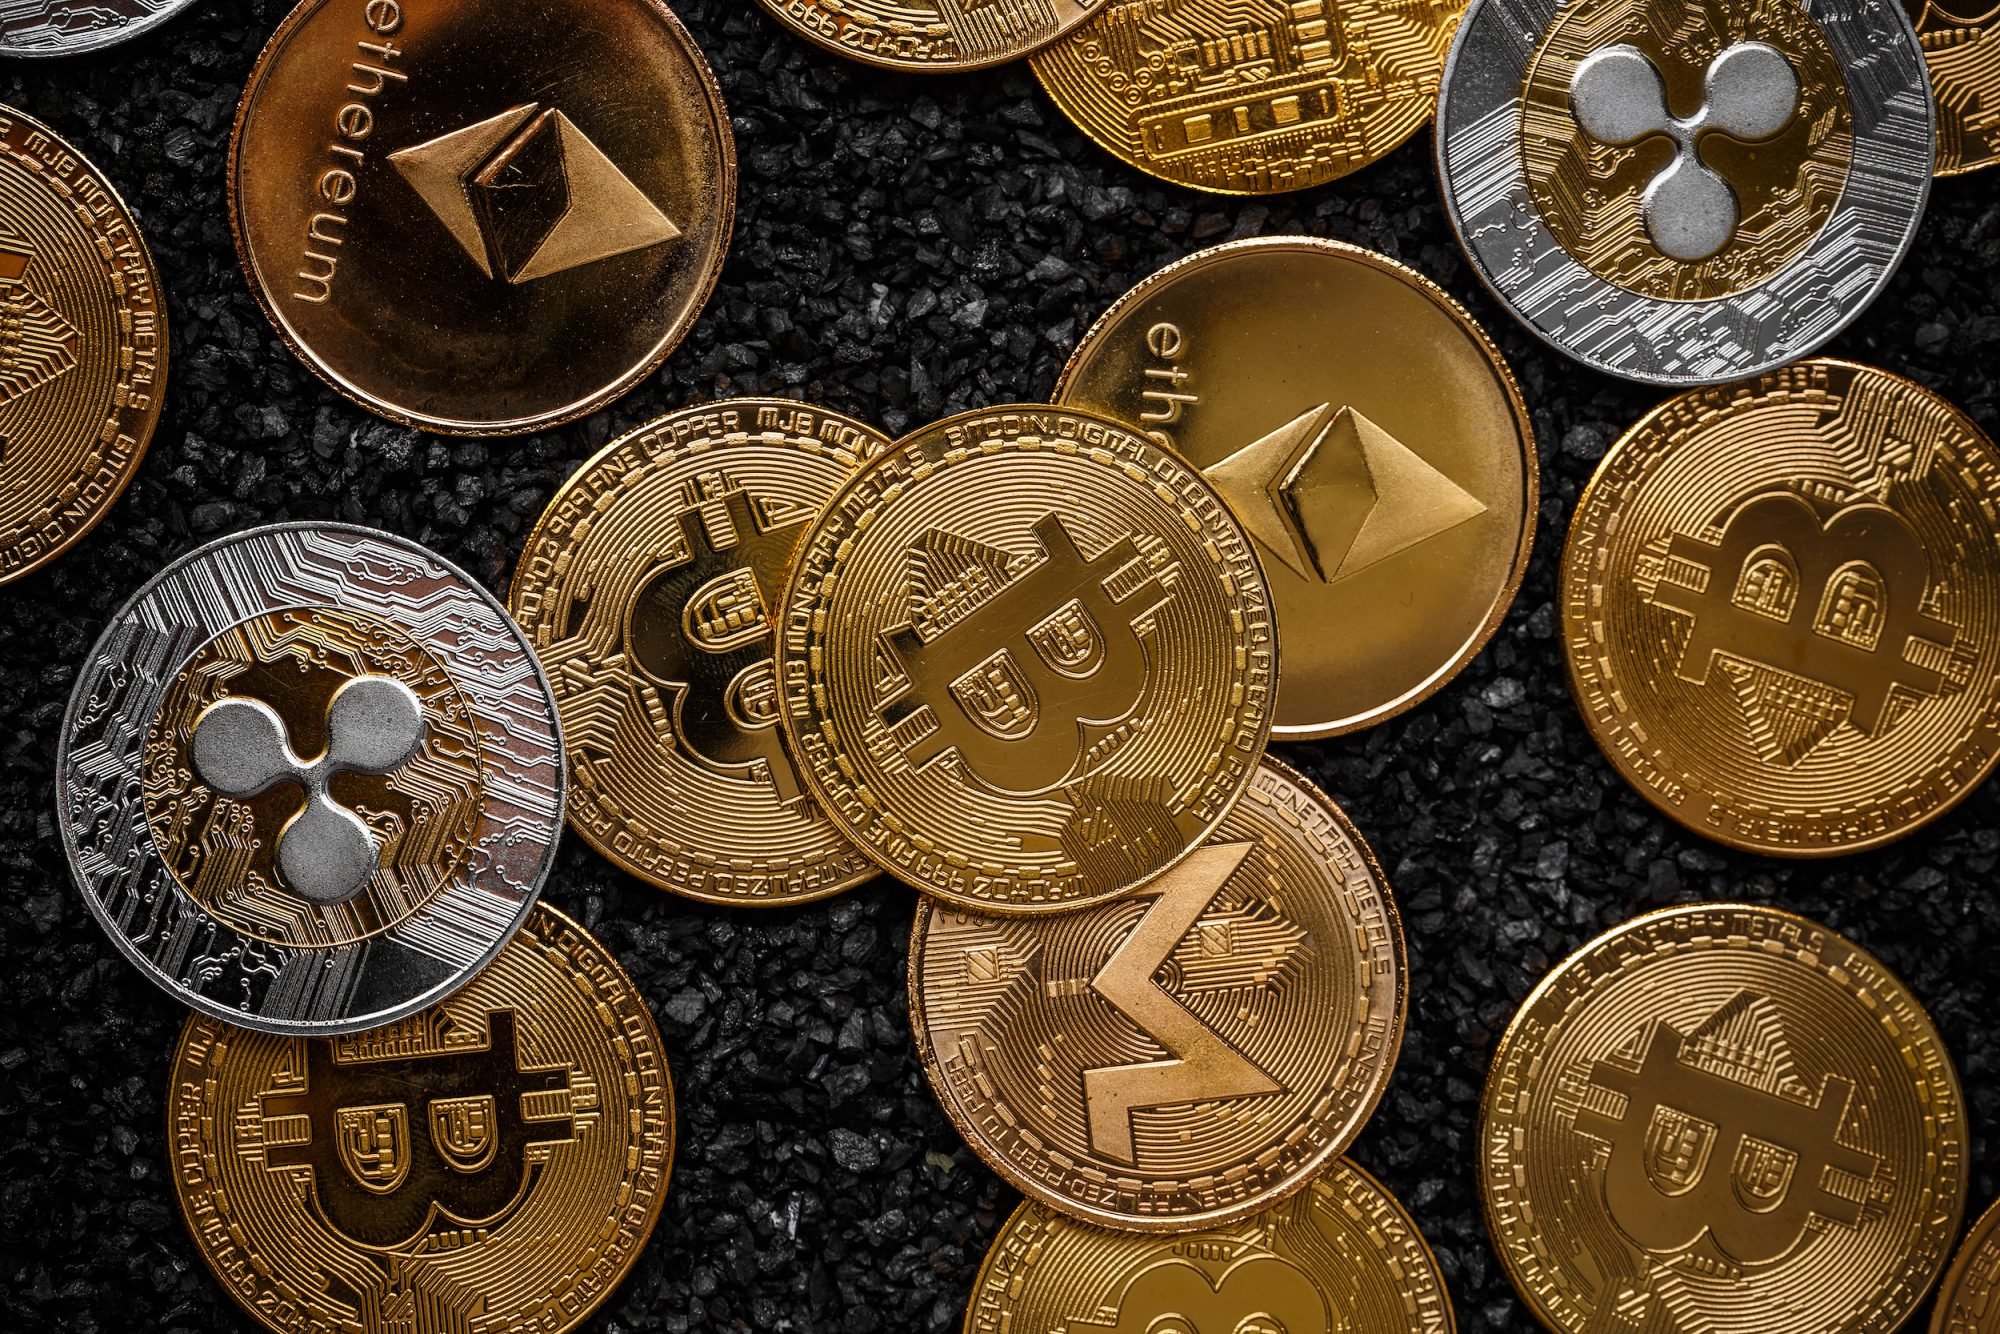 Cryptocurrencies threaten Europe's financial system